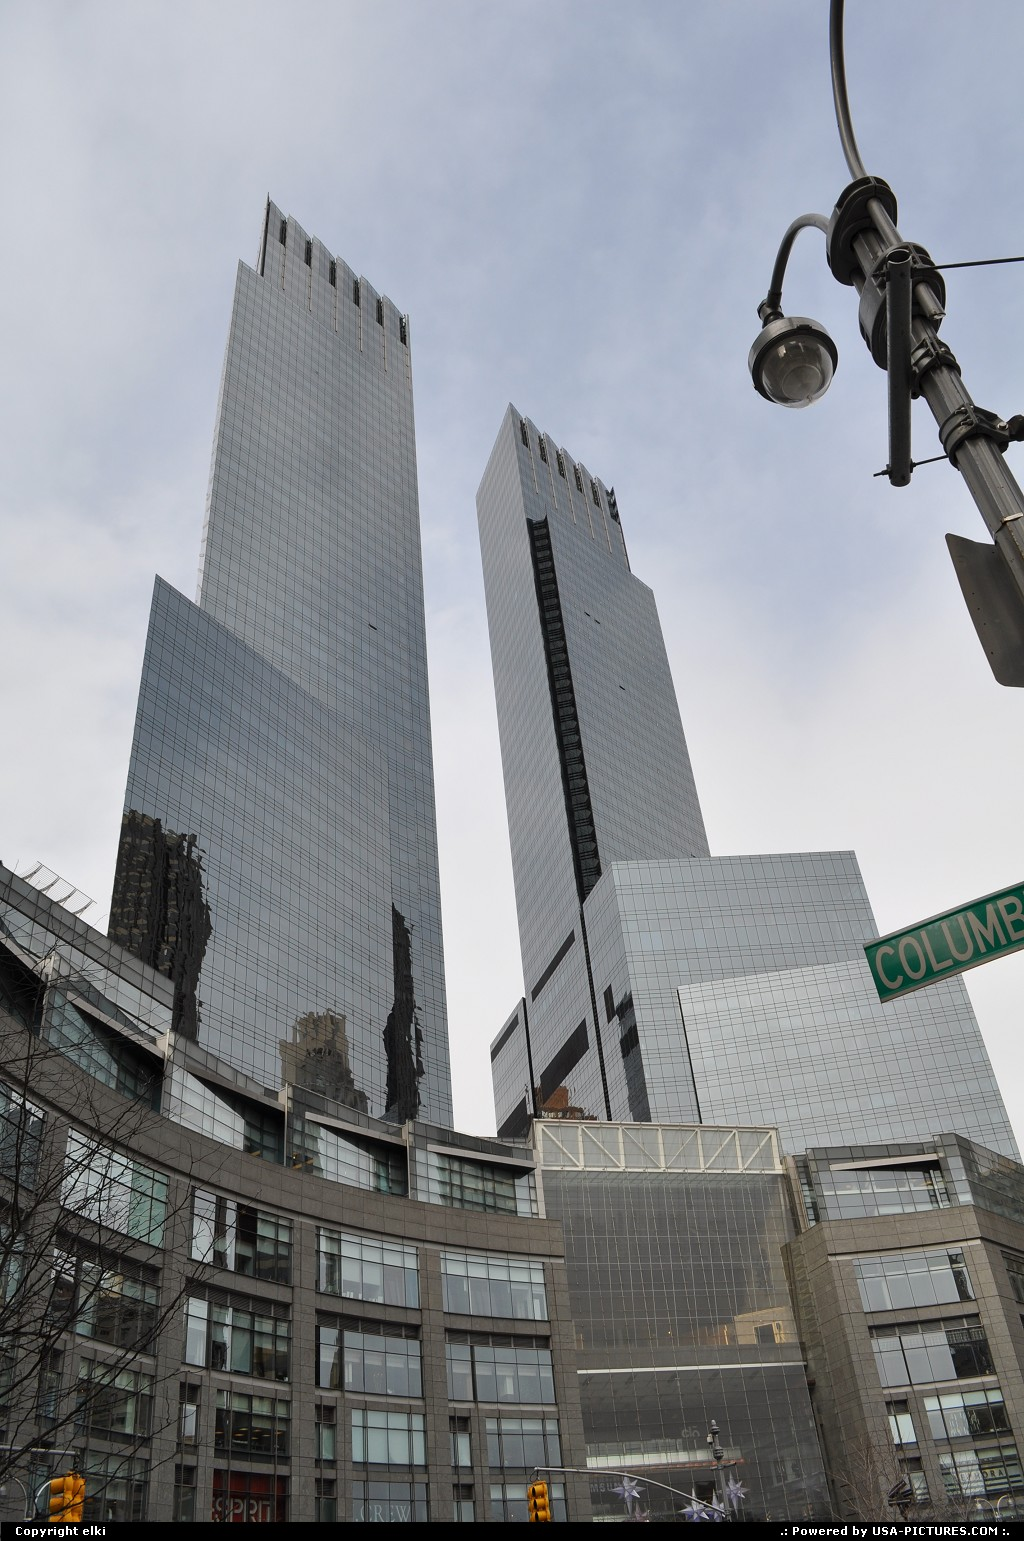 Picture by elki:New YorkNew-yorktime warner building colombus circle